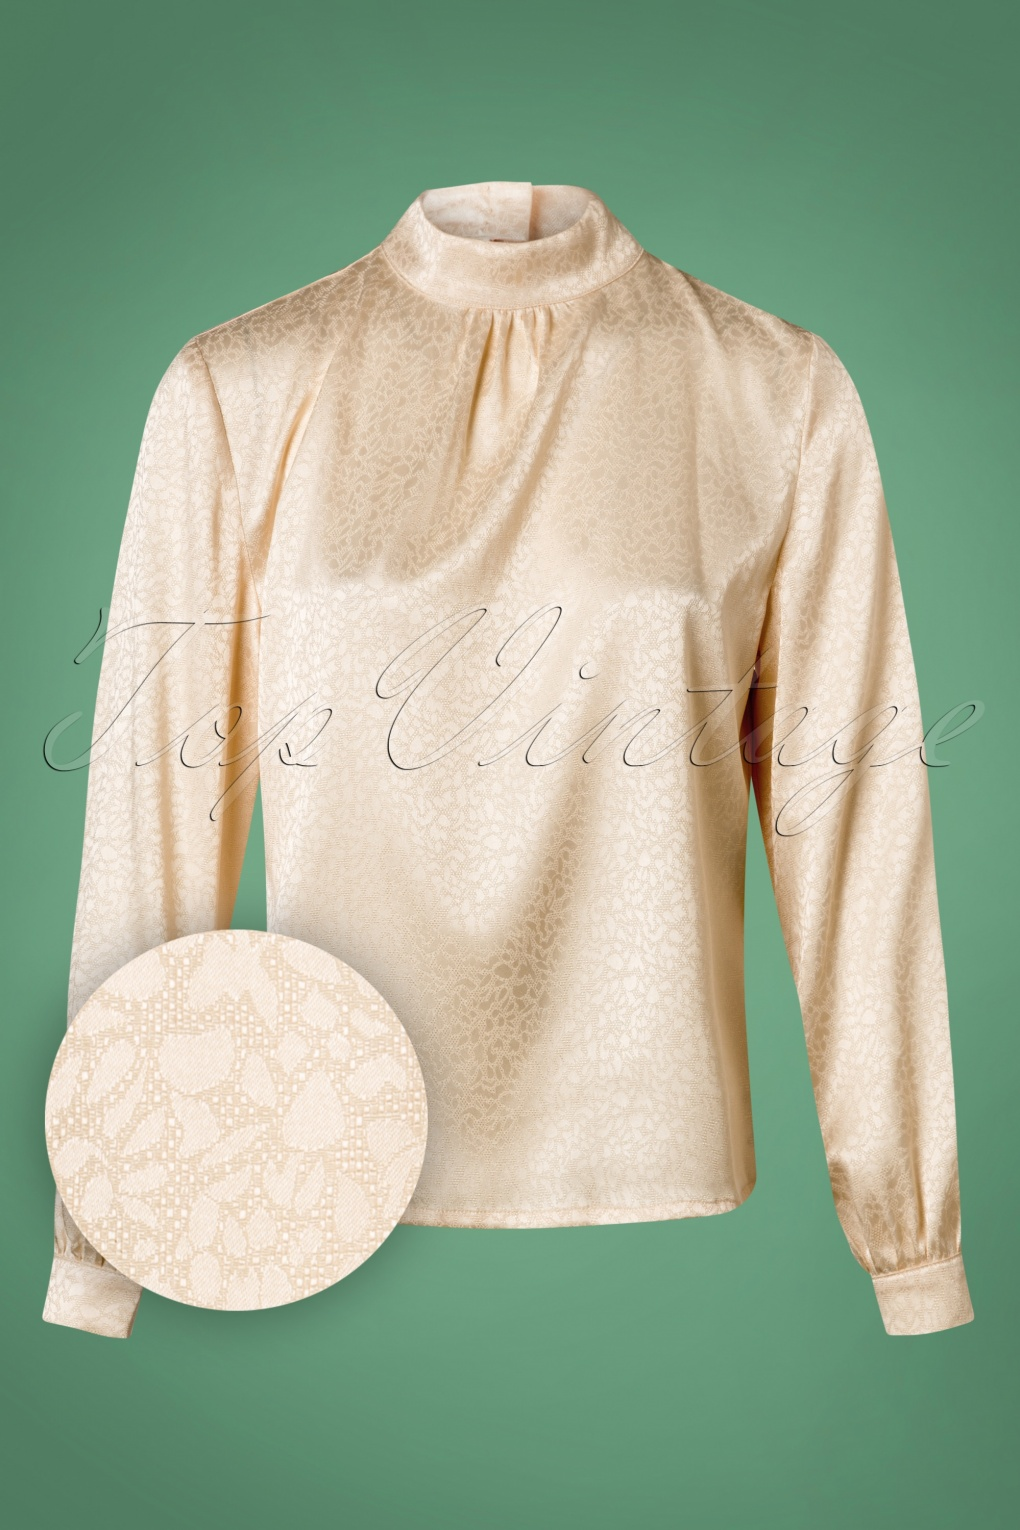 1950s Rockabilly & Pin Up Tops, Blouses, Shirts 40s Natalie Blouse in Cream £37.03 AT vintagedancer.com